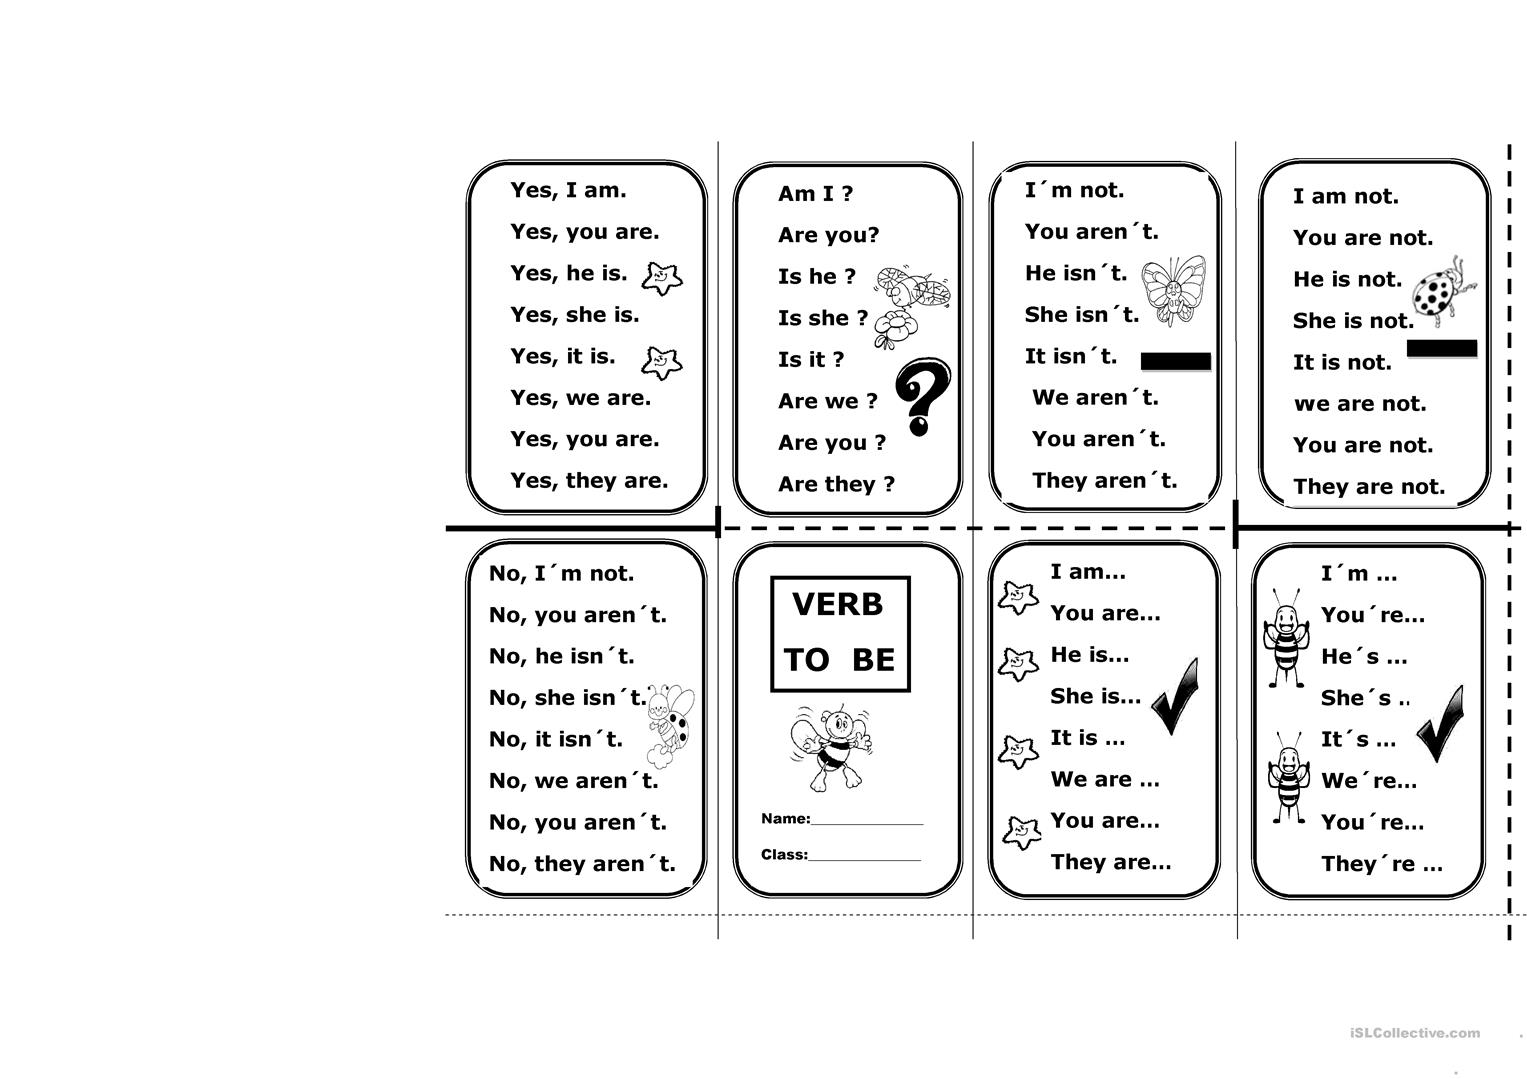 To Be Verb Worksheet